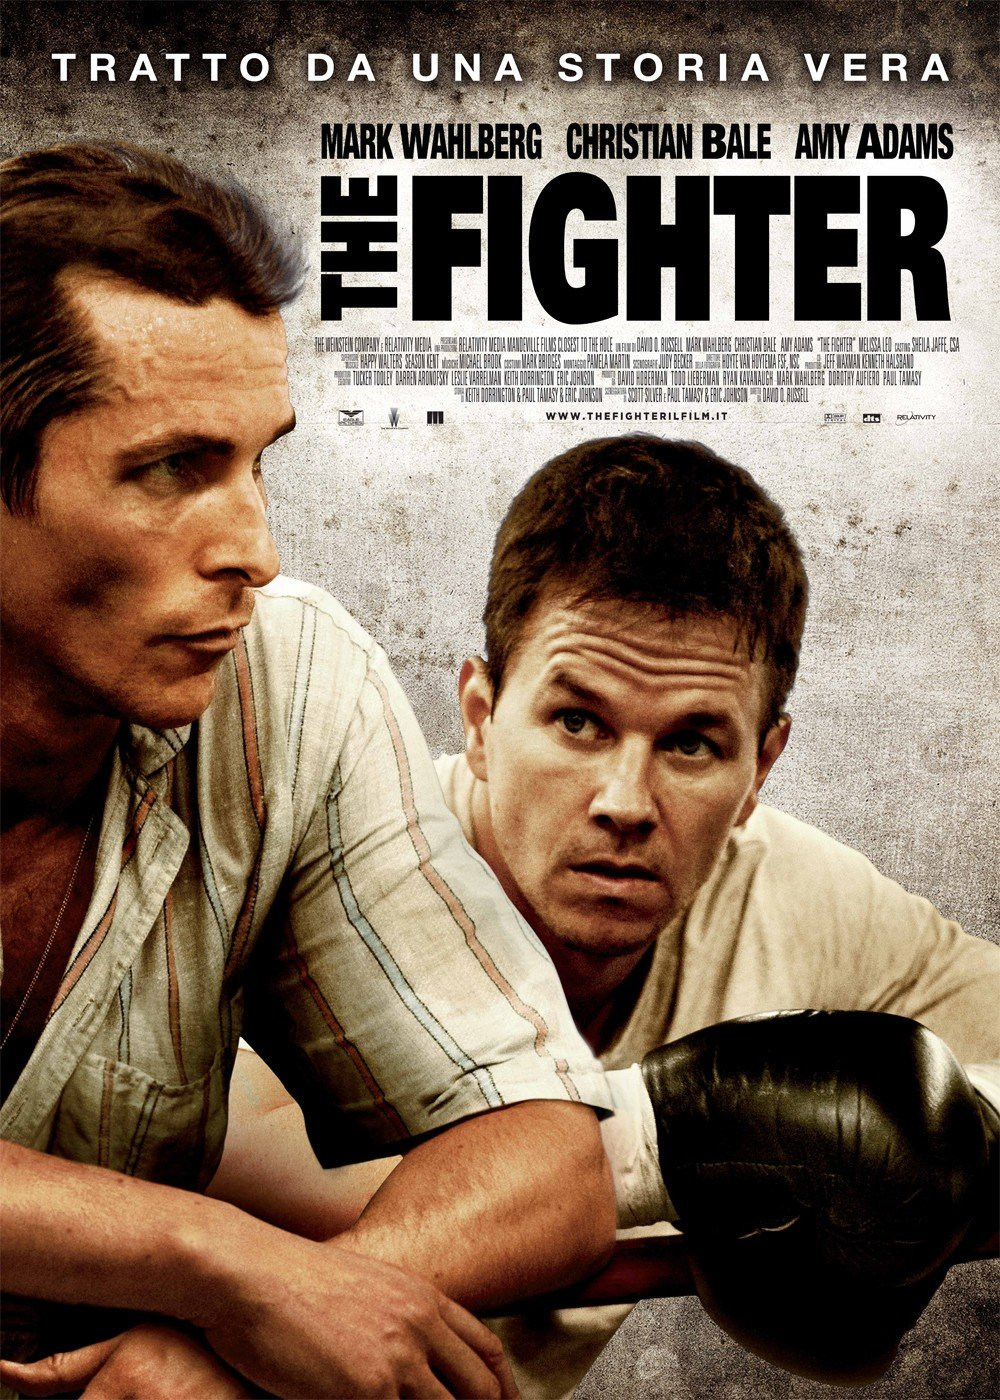 The fighter and the kid special k 5ways2win com